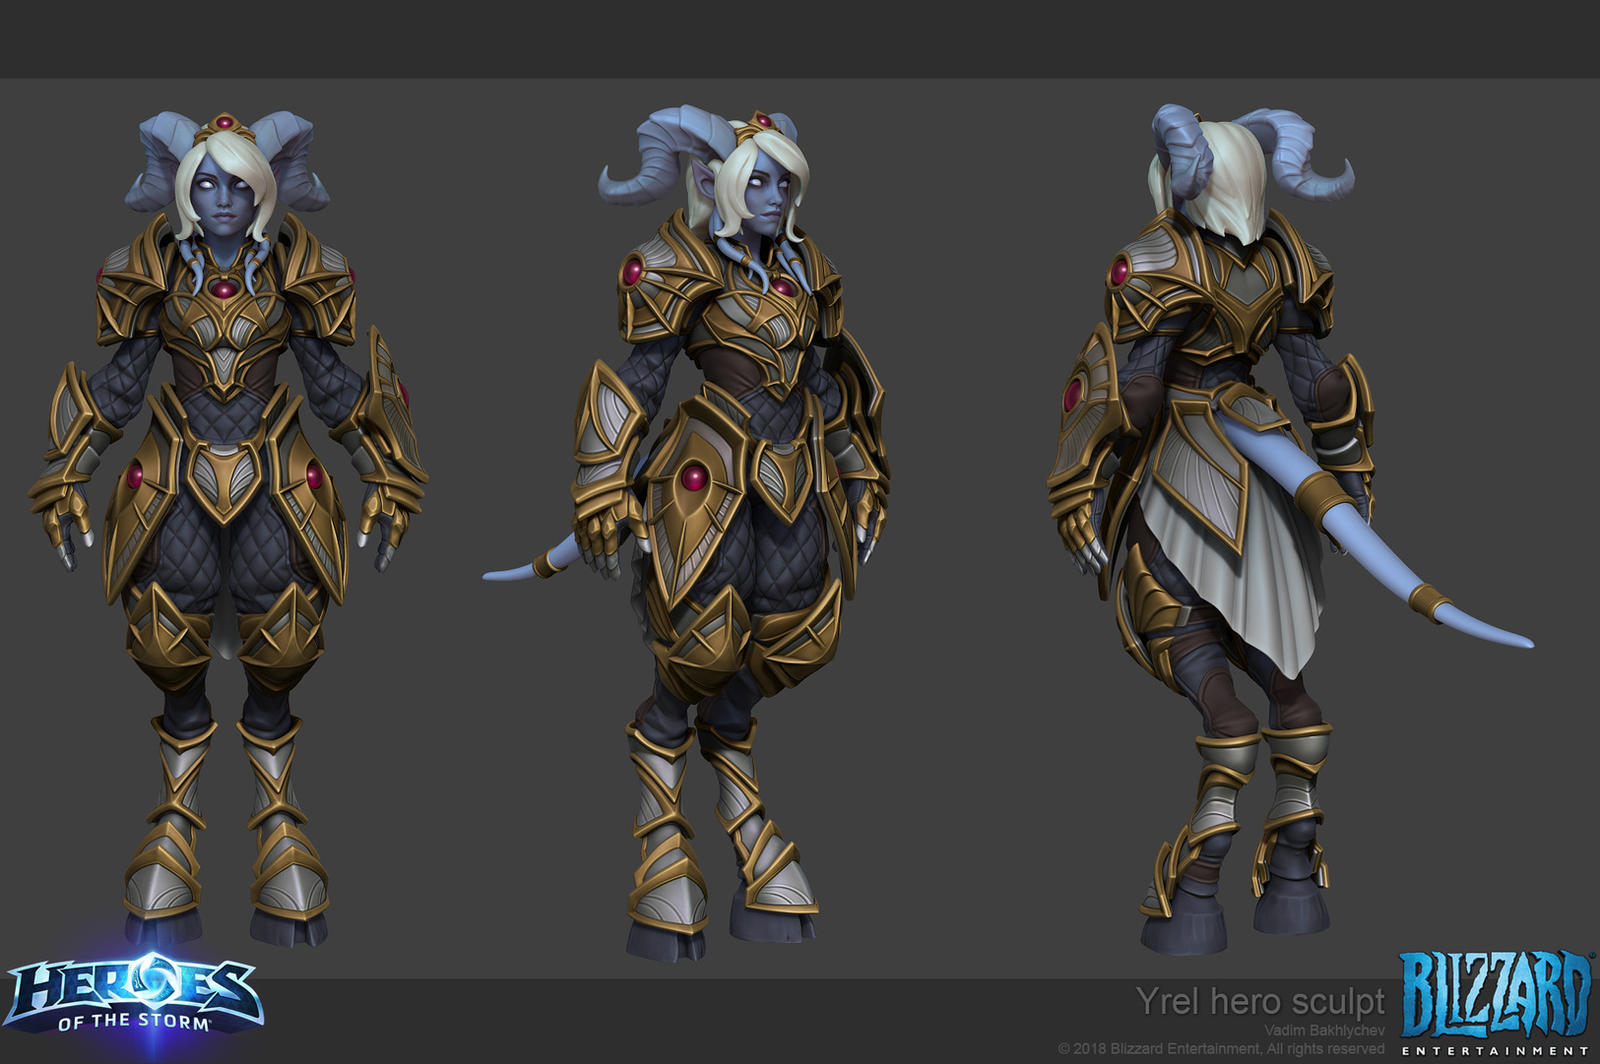 Heroes Of The Storm Yrel By Slipgatecentral On Deviantart She is going to be one of the strongest pocket picks in the game with the ability. heroes of the storm yrel by